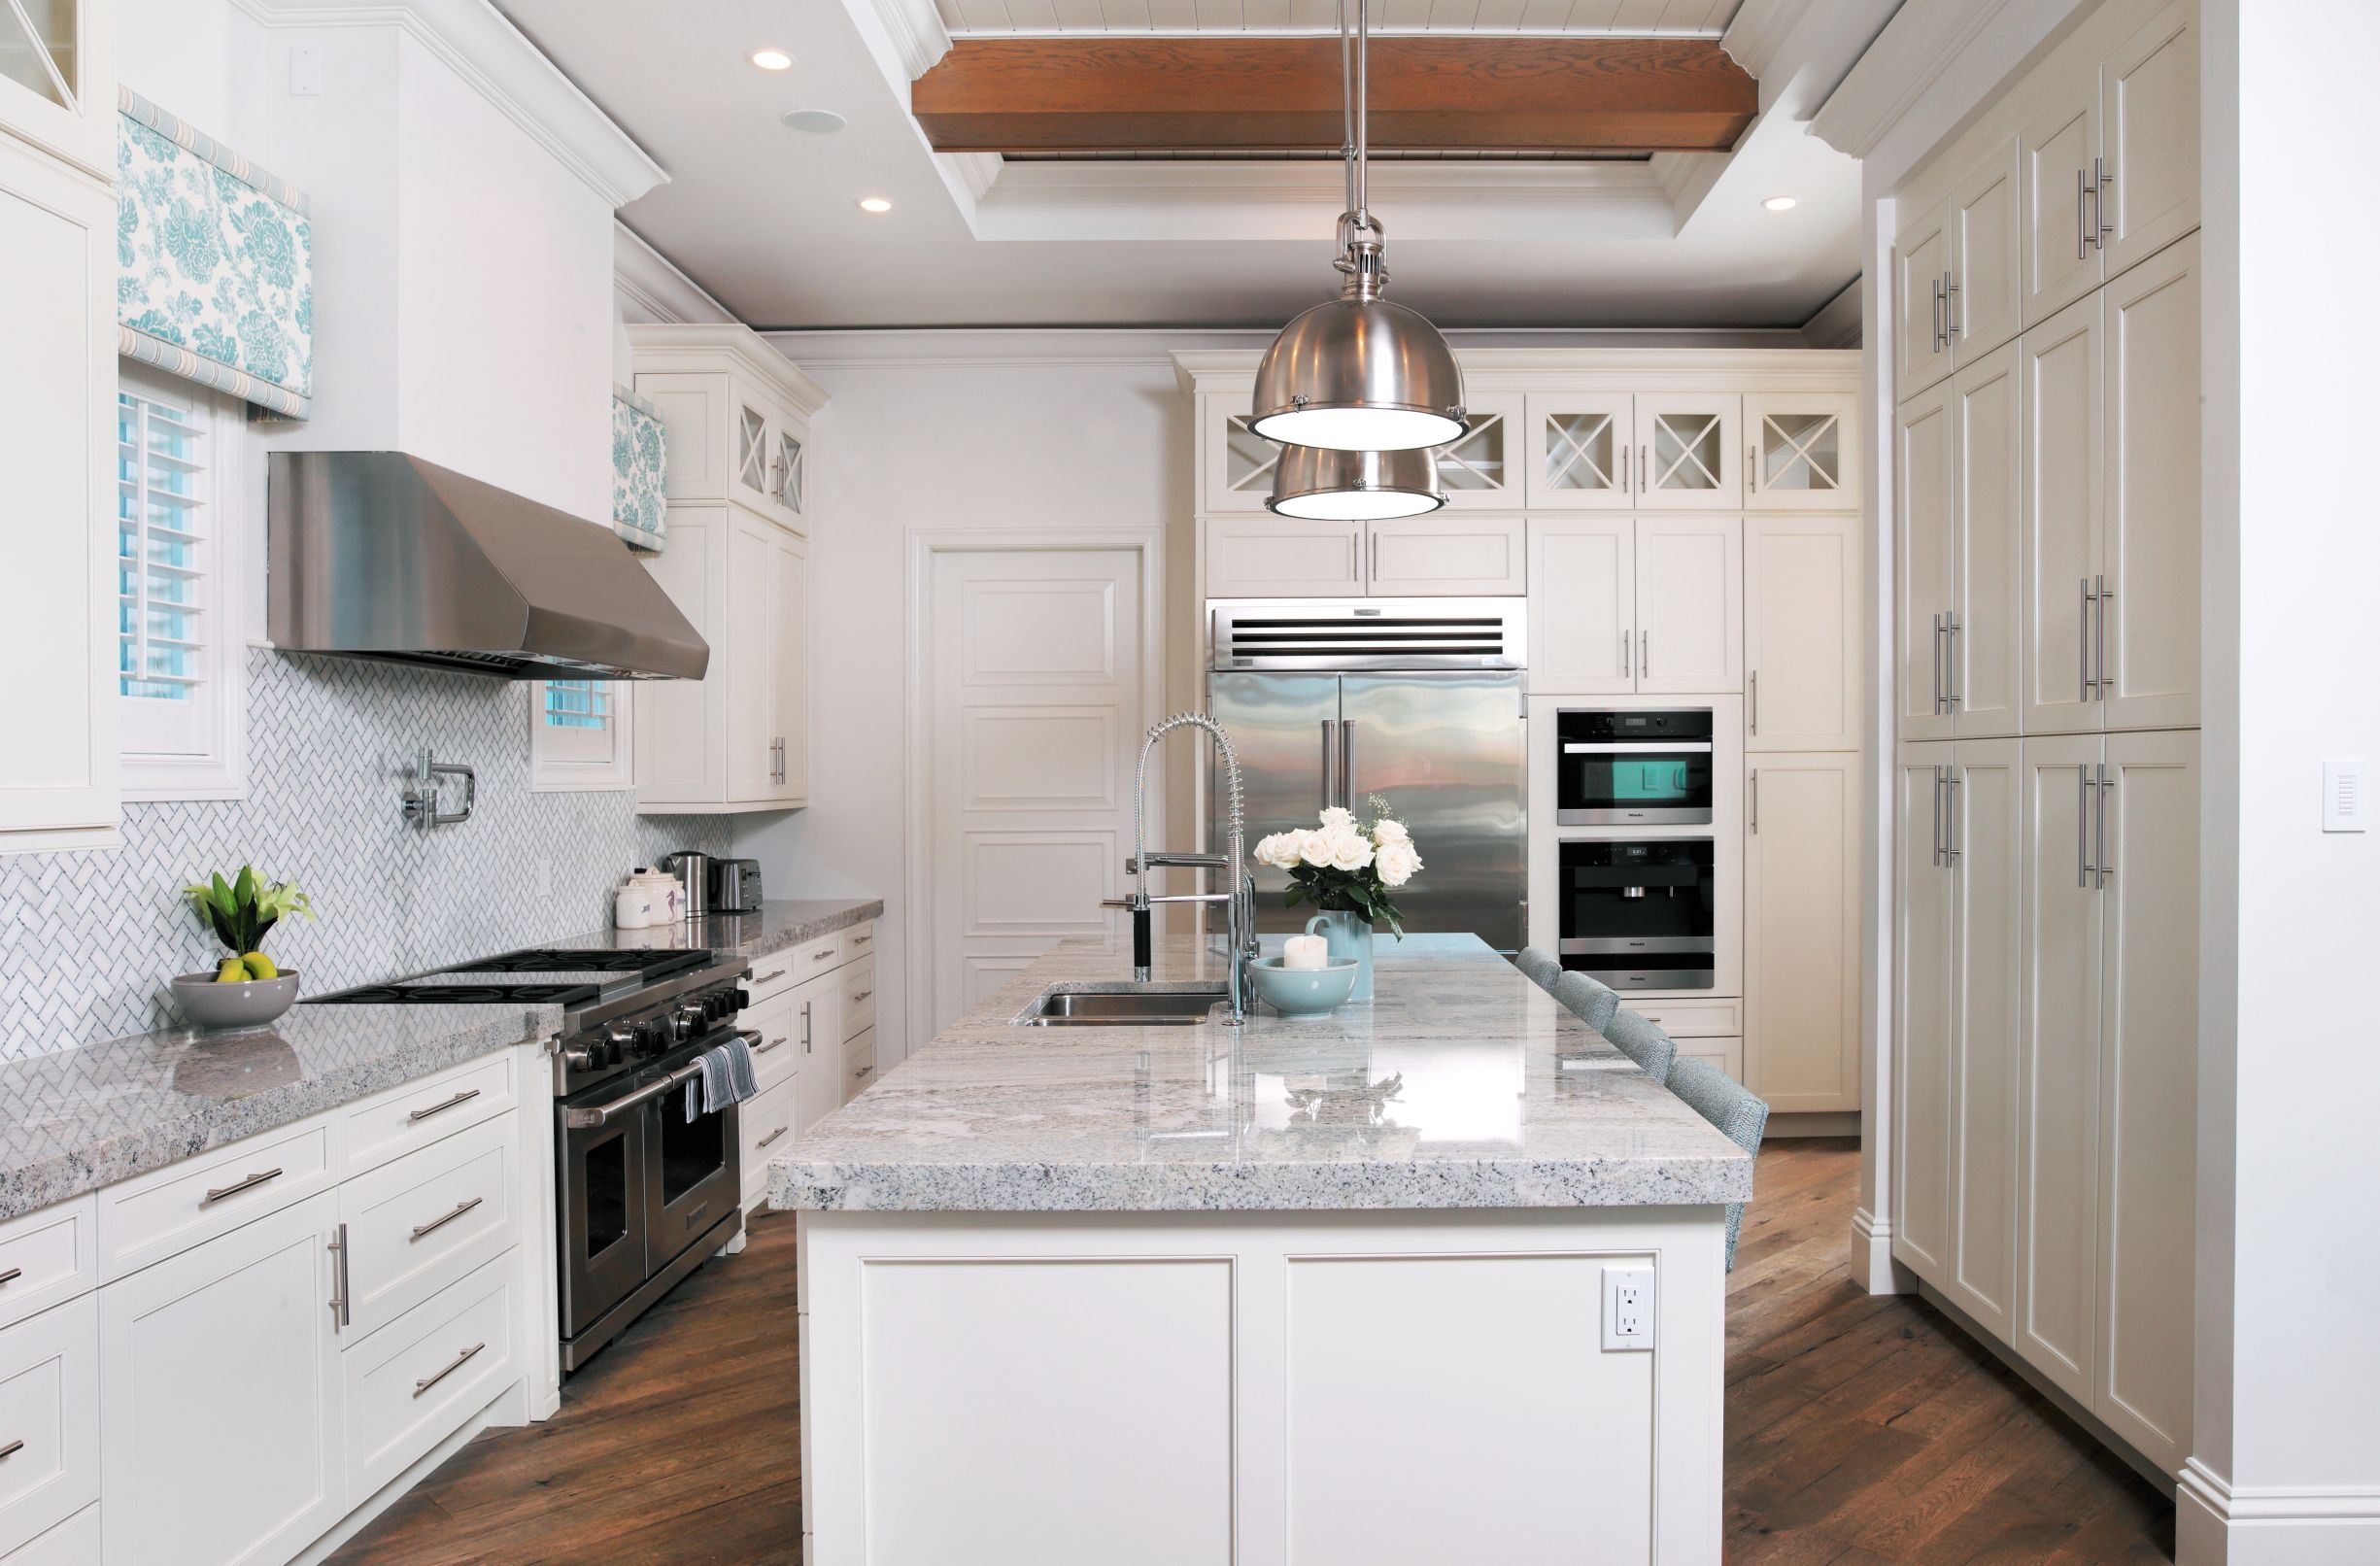 Large galley kitchen. Stainless steel appliances. Granite countertop and island. Home custom designed by Don Stevenson Design located in Naples, Florida. www.donstevensondesign.com